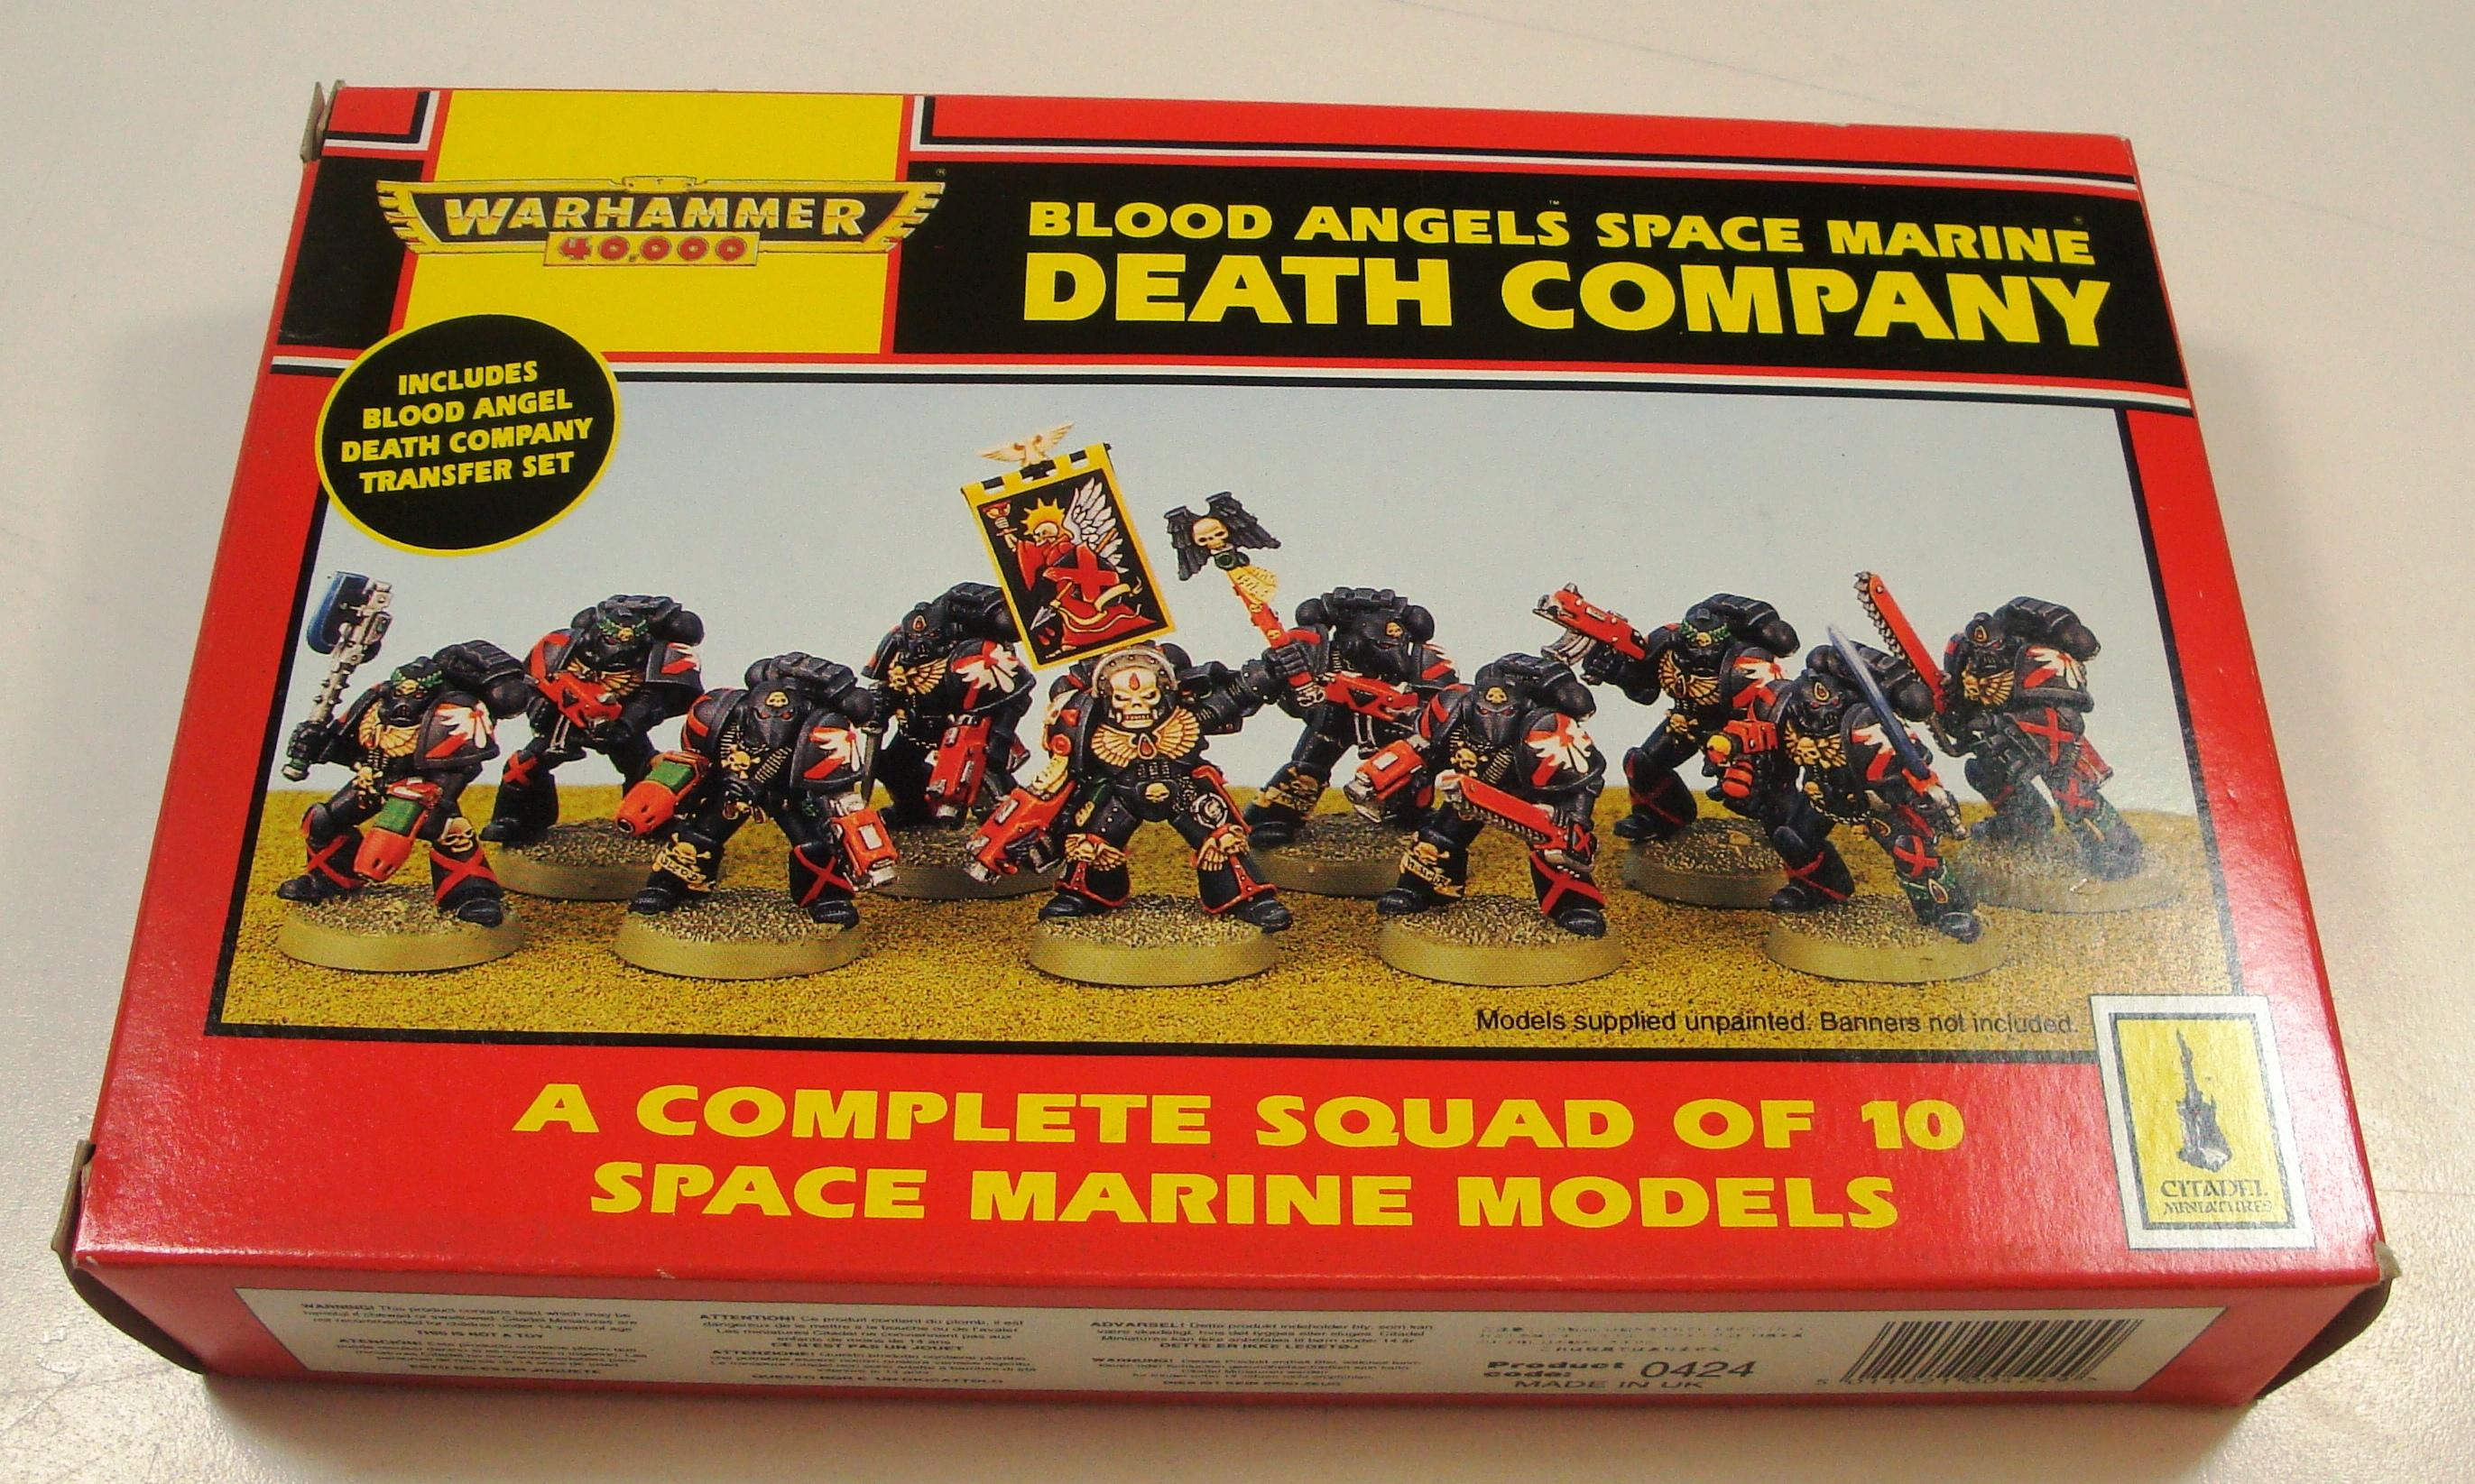 Adeptus Astartes, Astartes, Blood Angels, Death Company, Dreadnought, Imperial Fists, Predator, Razorback, Rhino, Rogue Trader, Sale, Space Marines, Whirlwind